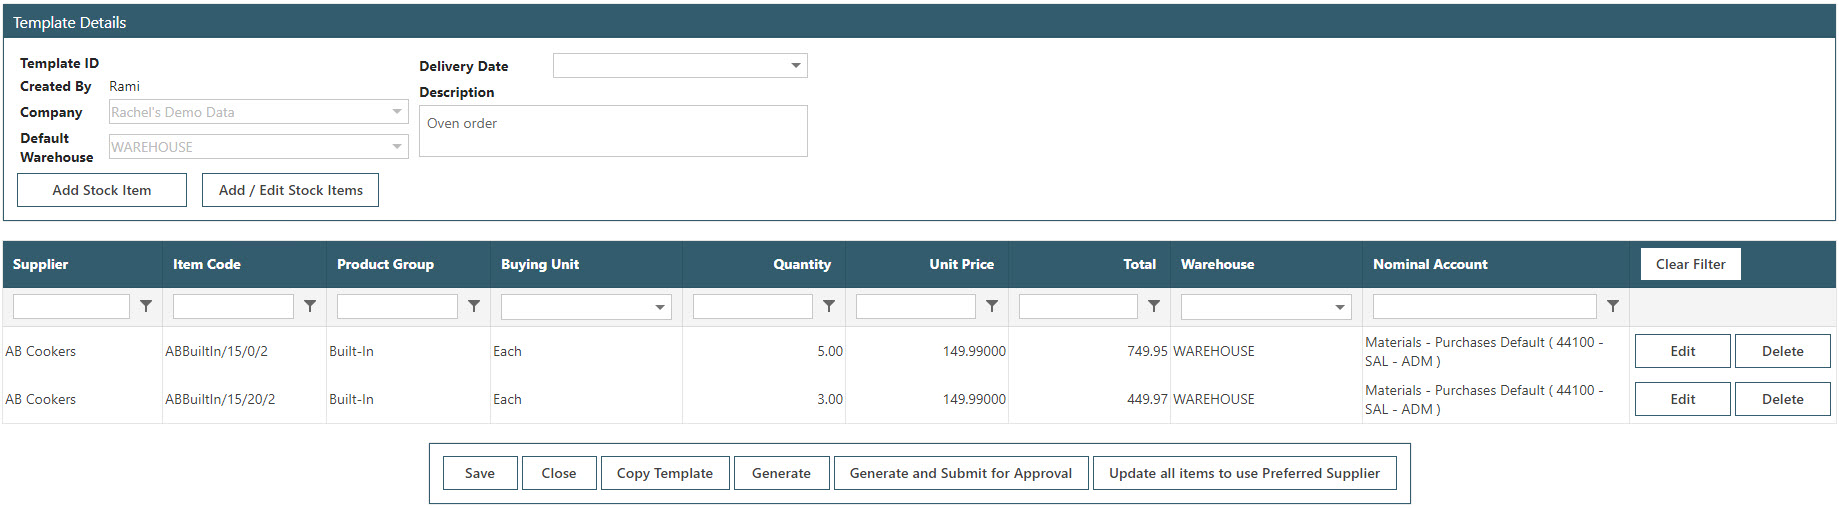 Sicon WAP Purchase Requisitions Help and User Guide - Requisition HUG Section 17.2 Image 5